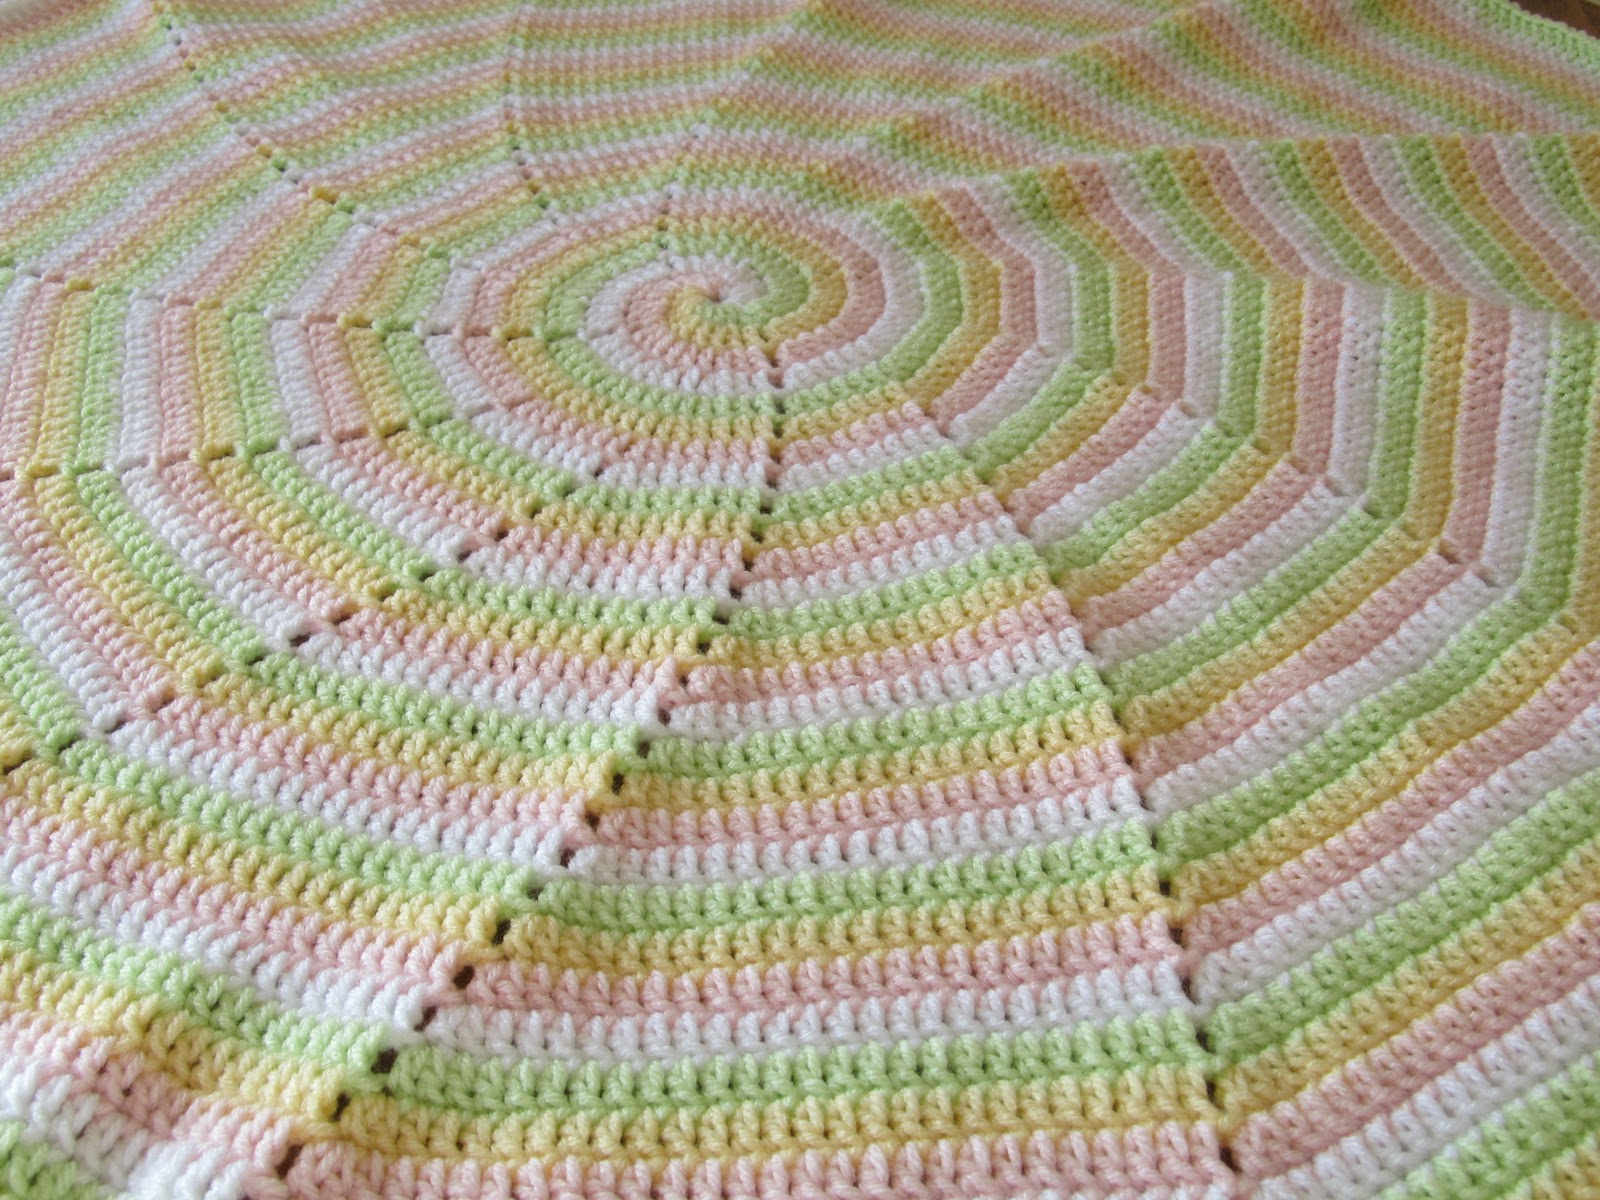 SmoothFox Crochet and Knit: SmoothFox\'s Four Color Spiral Blanket ...